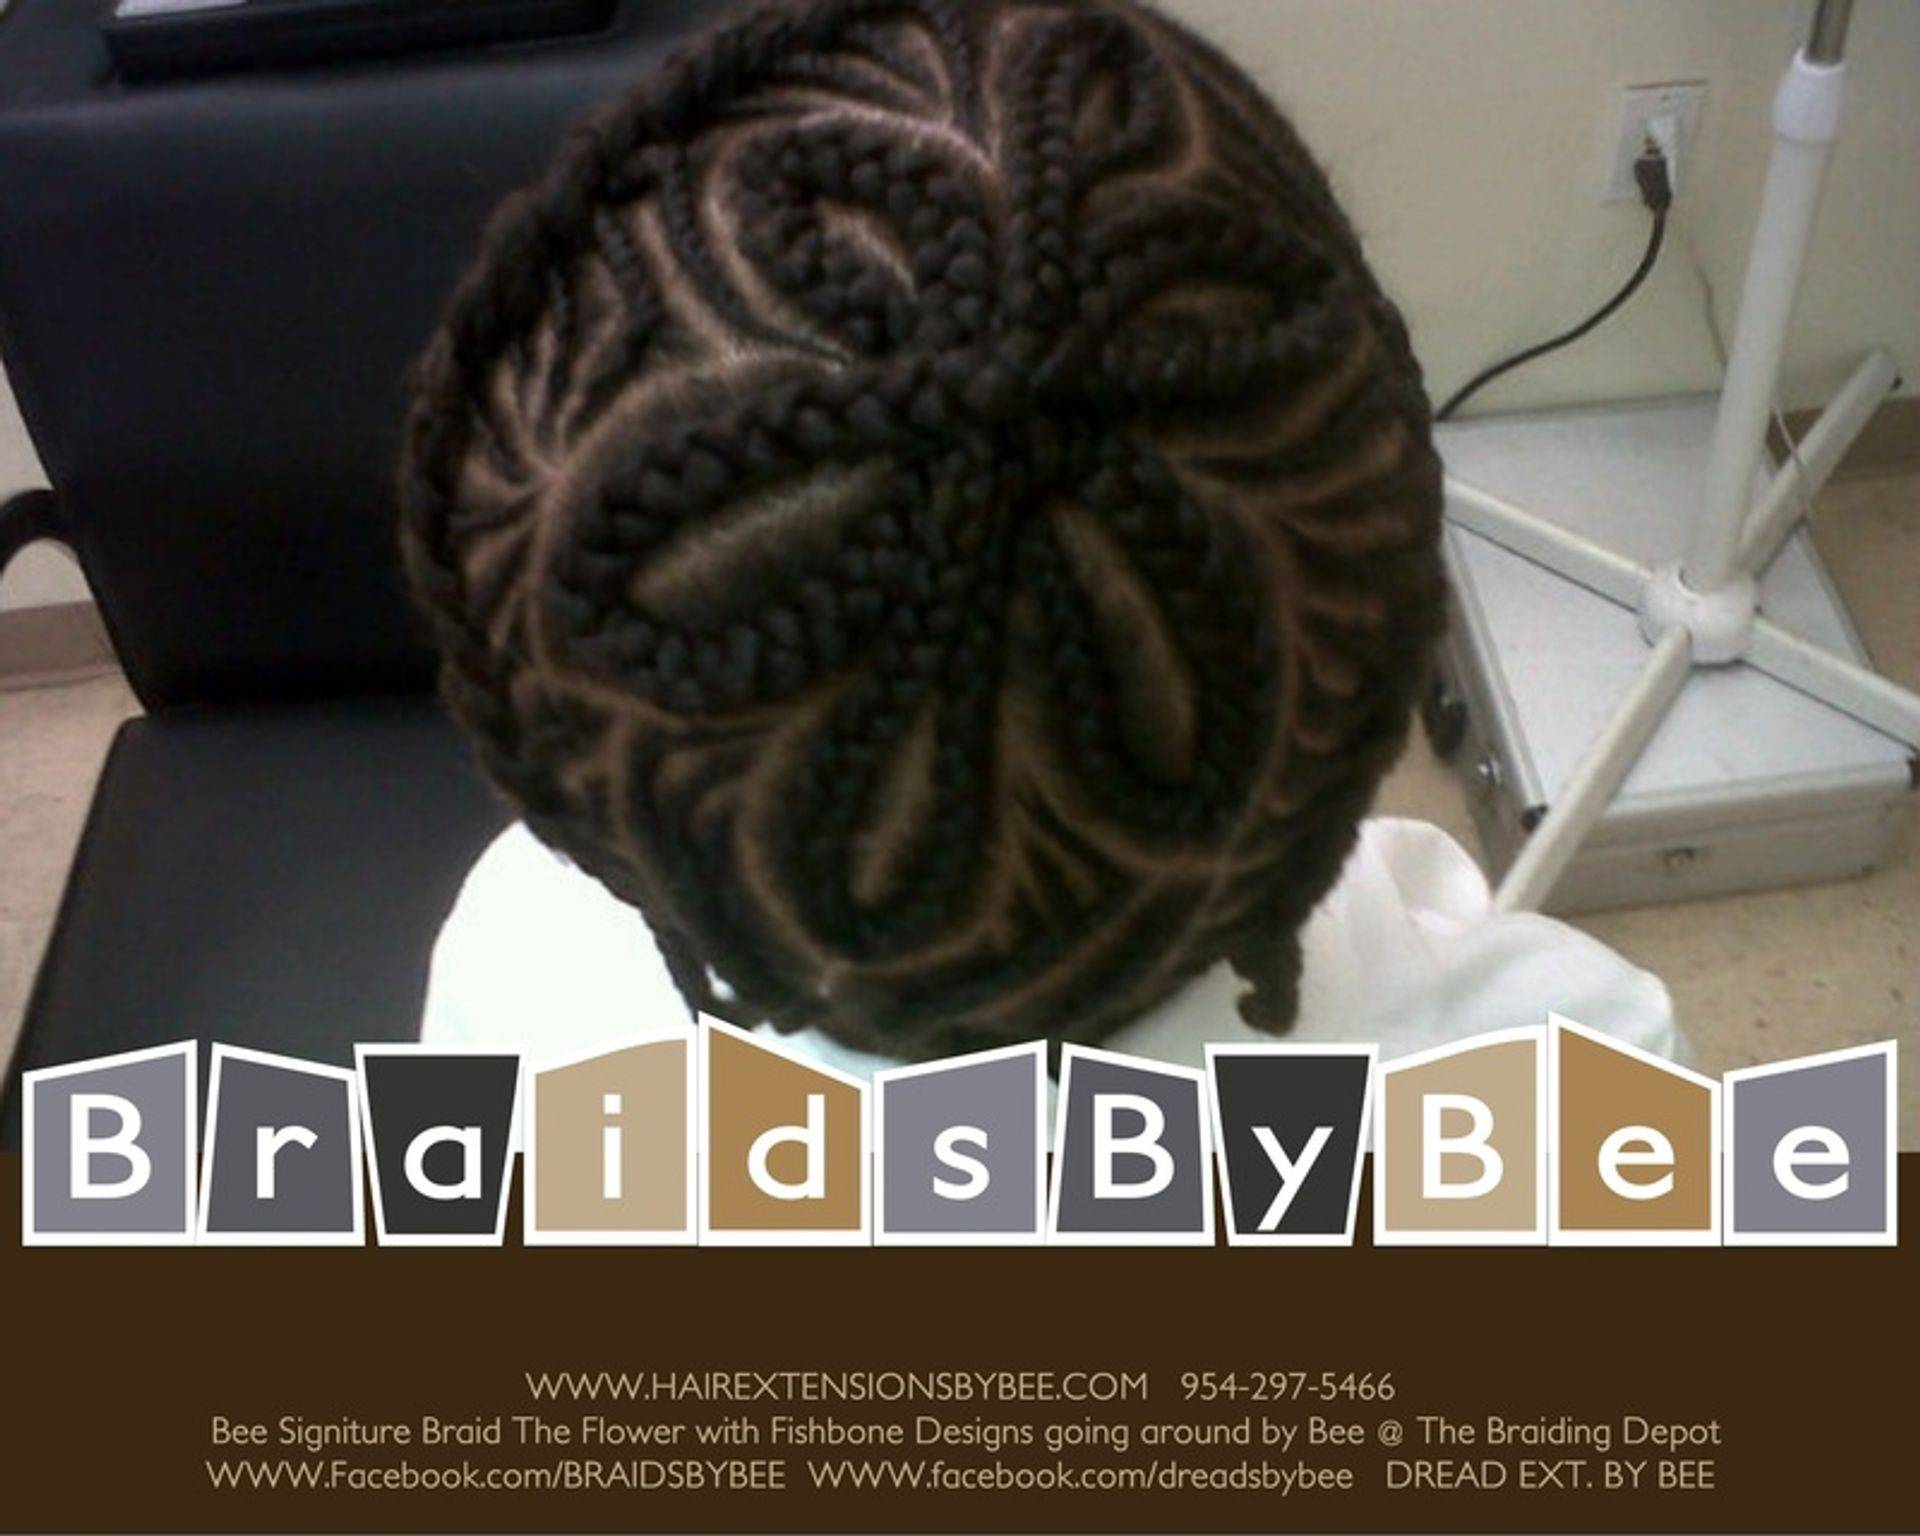 Design corn row braids customized and braided by Bee aka Braids by Bee™